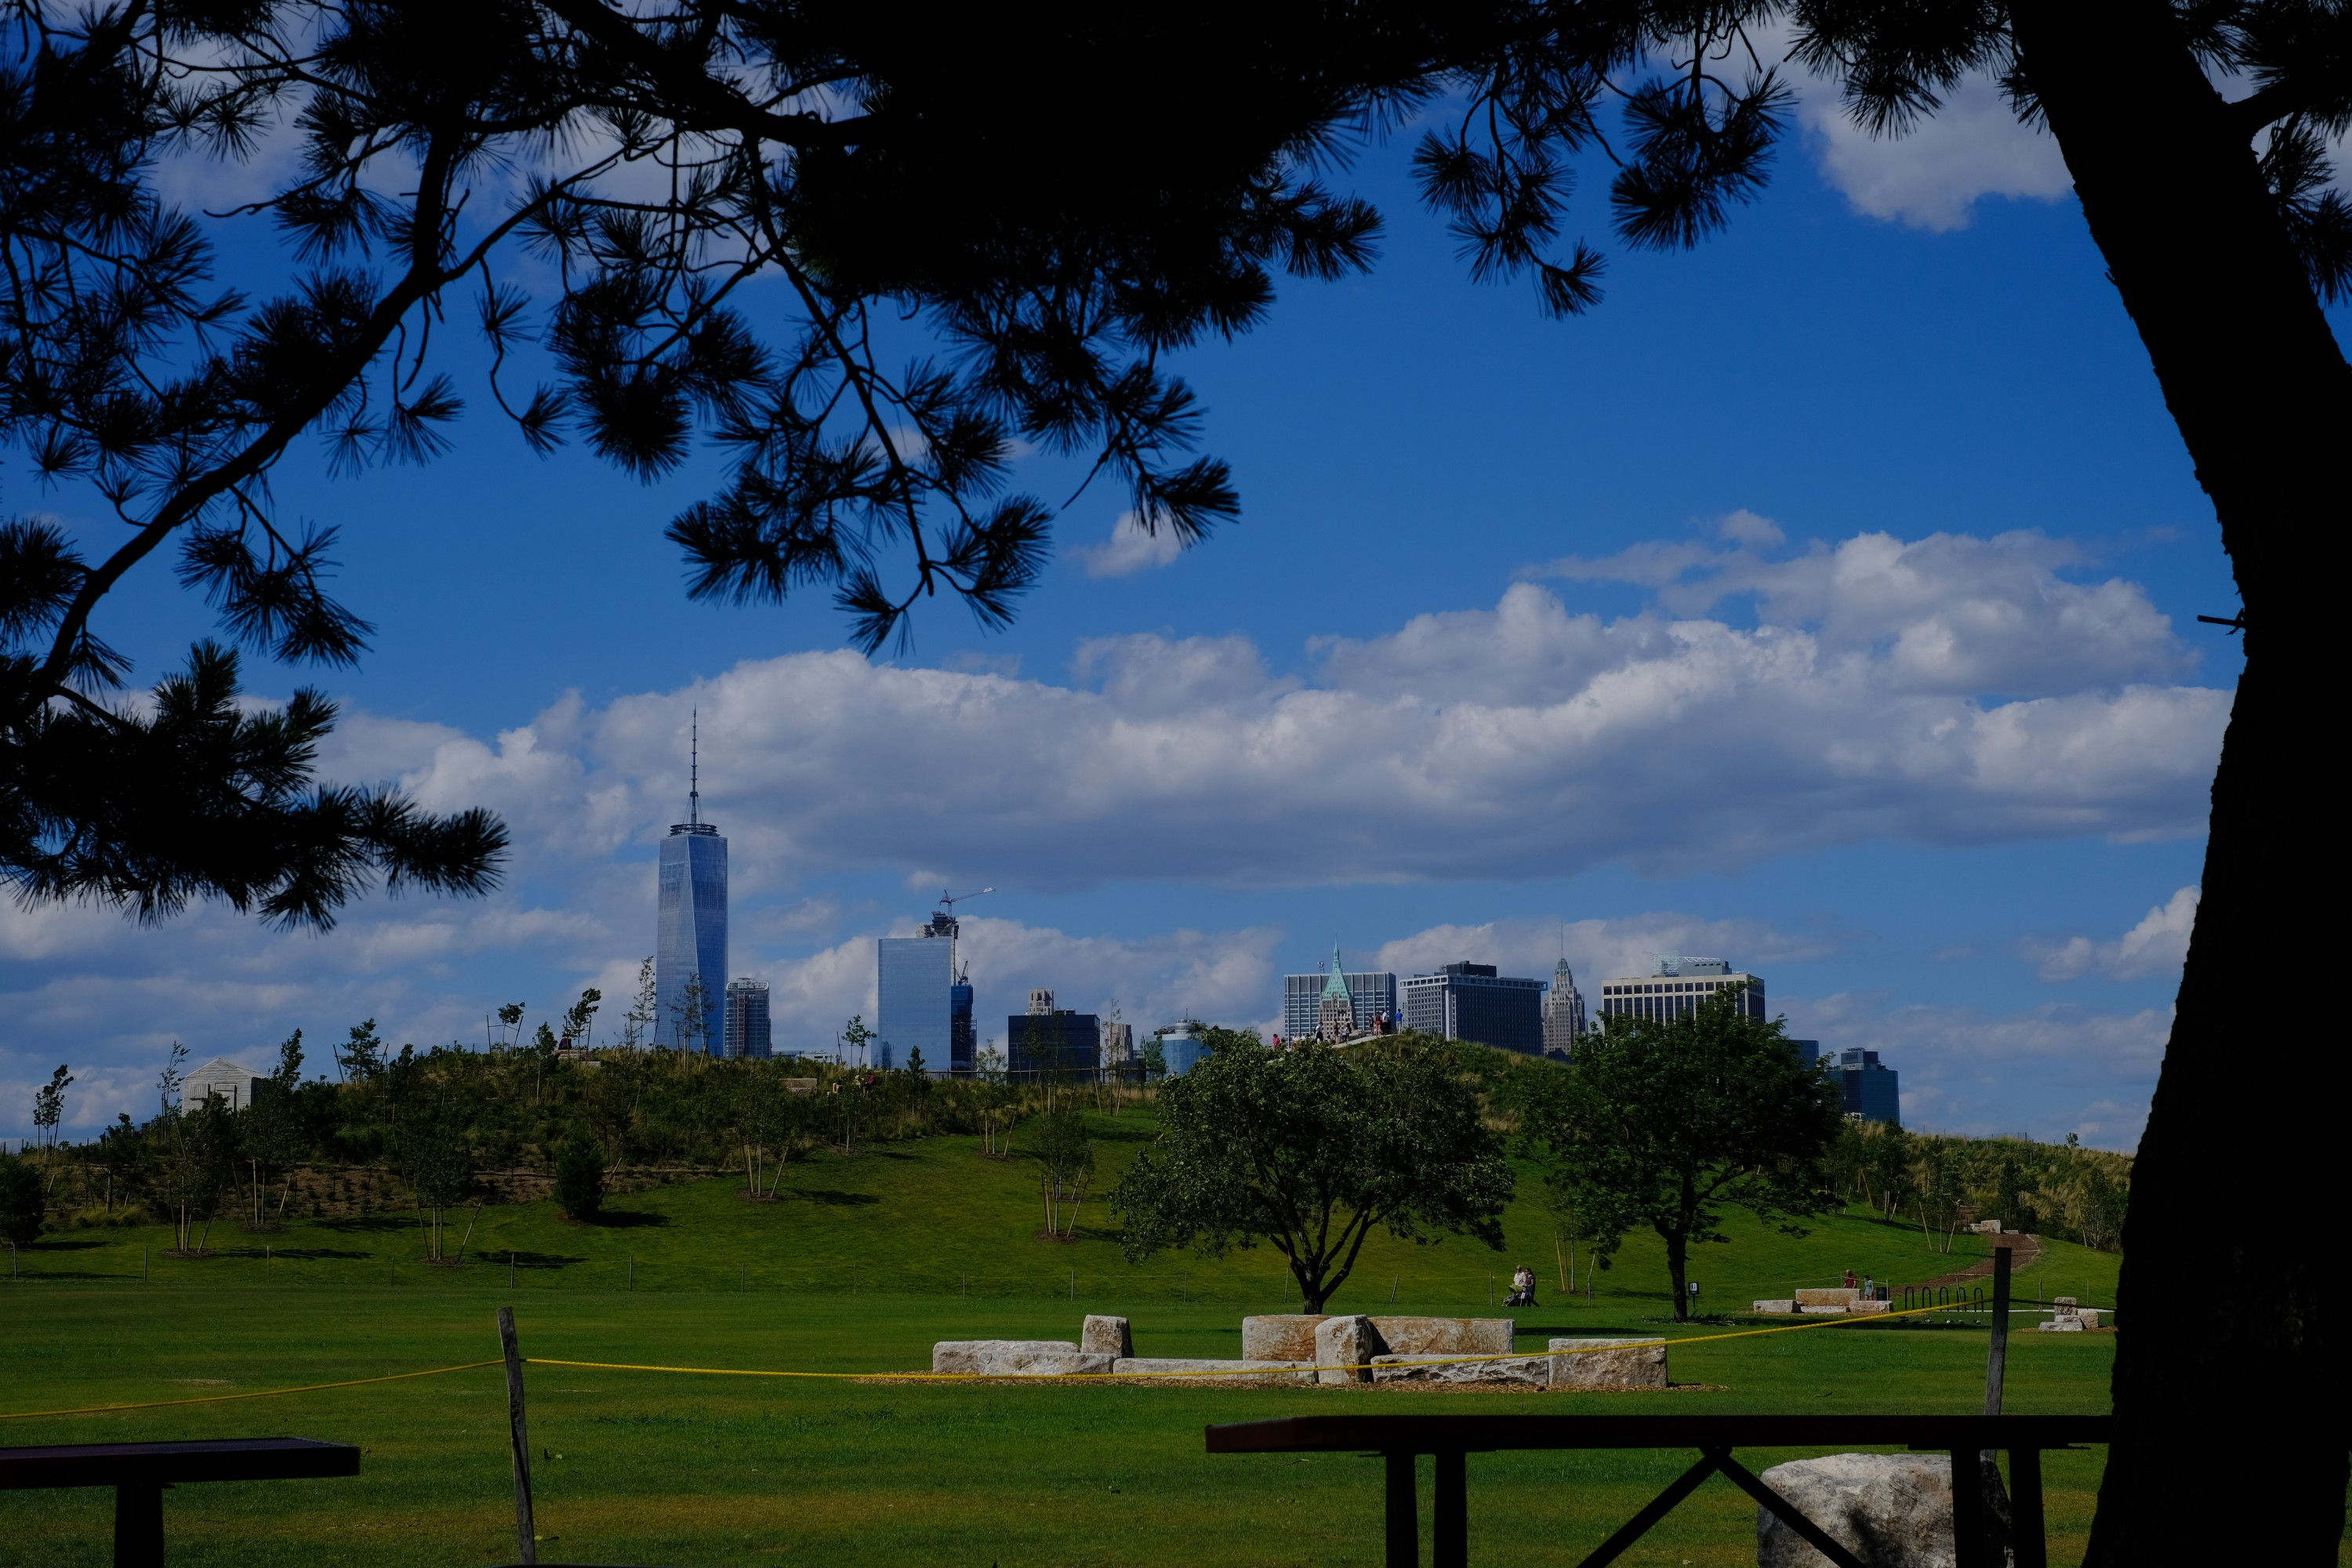 view of Manhattan skyline from Governors Island